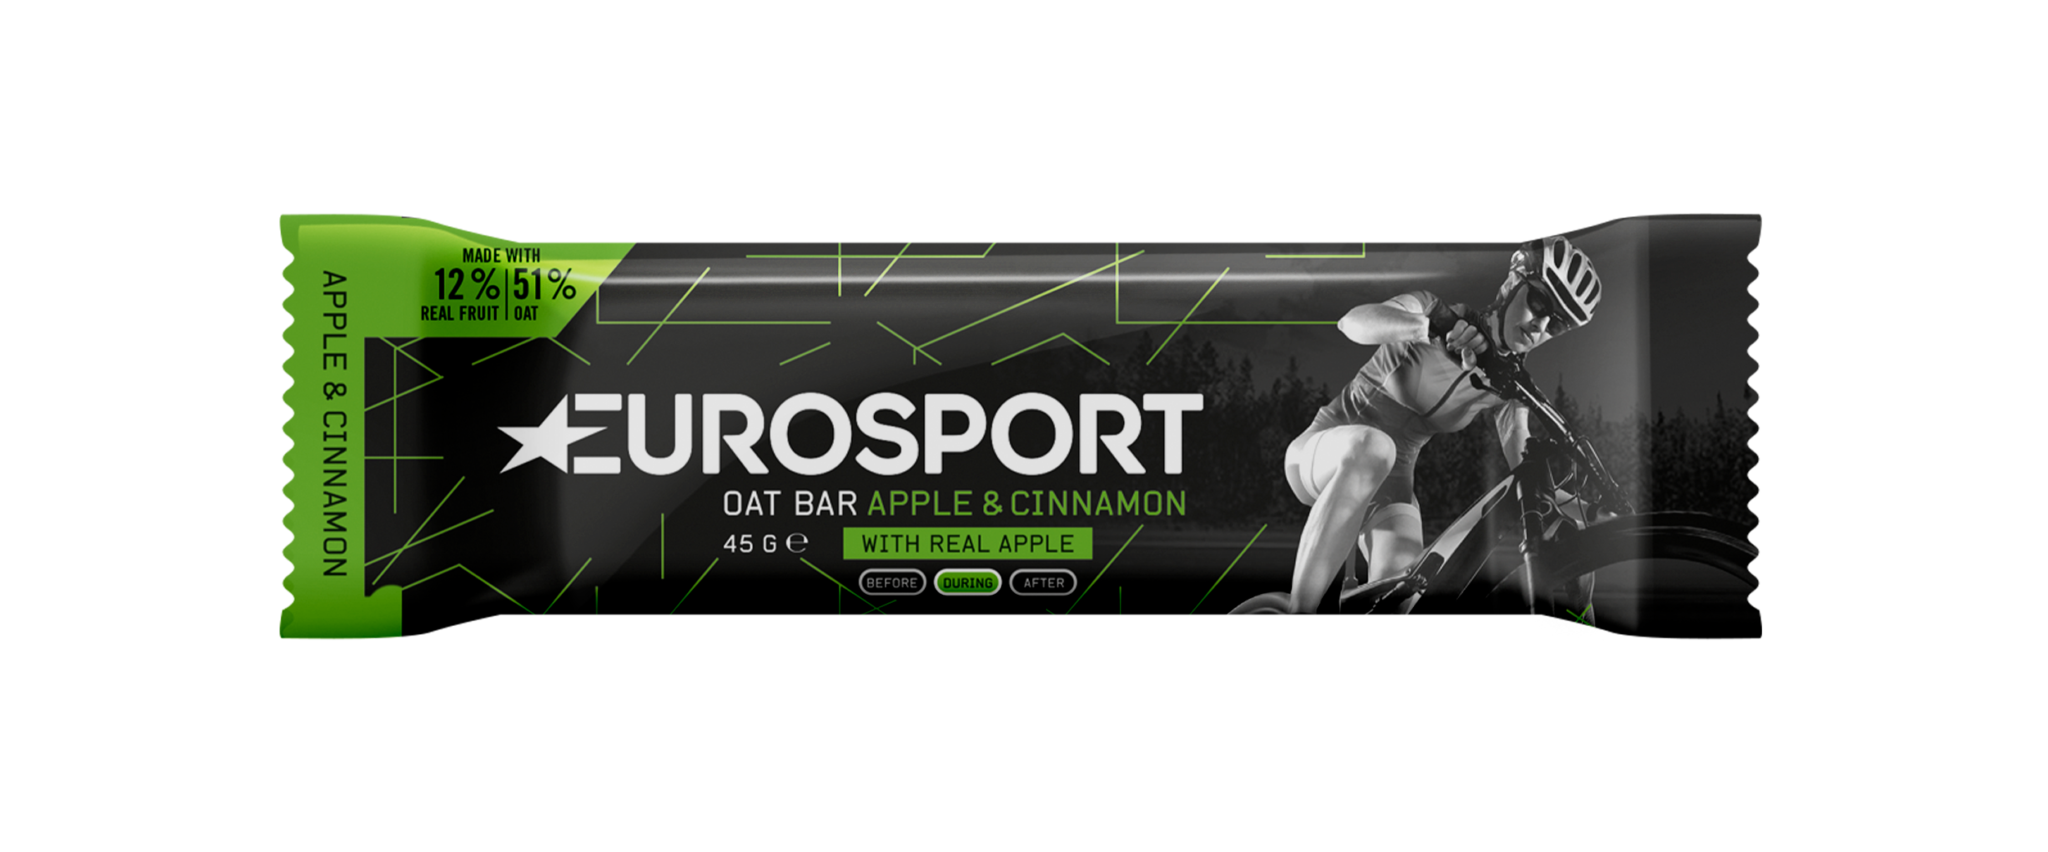 Eurosport - Oat Bar Apple Cinnamon - Reep - 3D